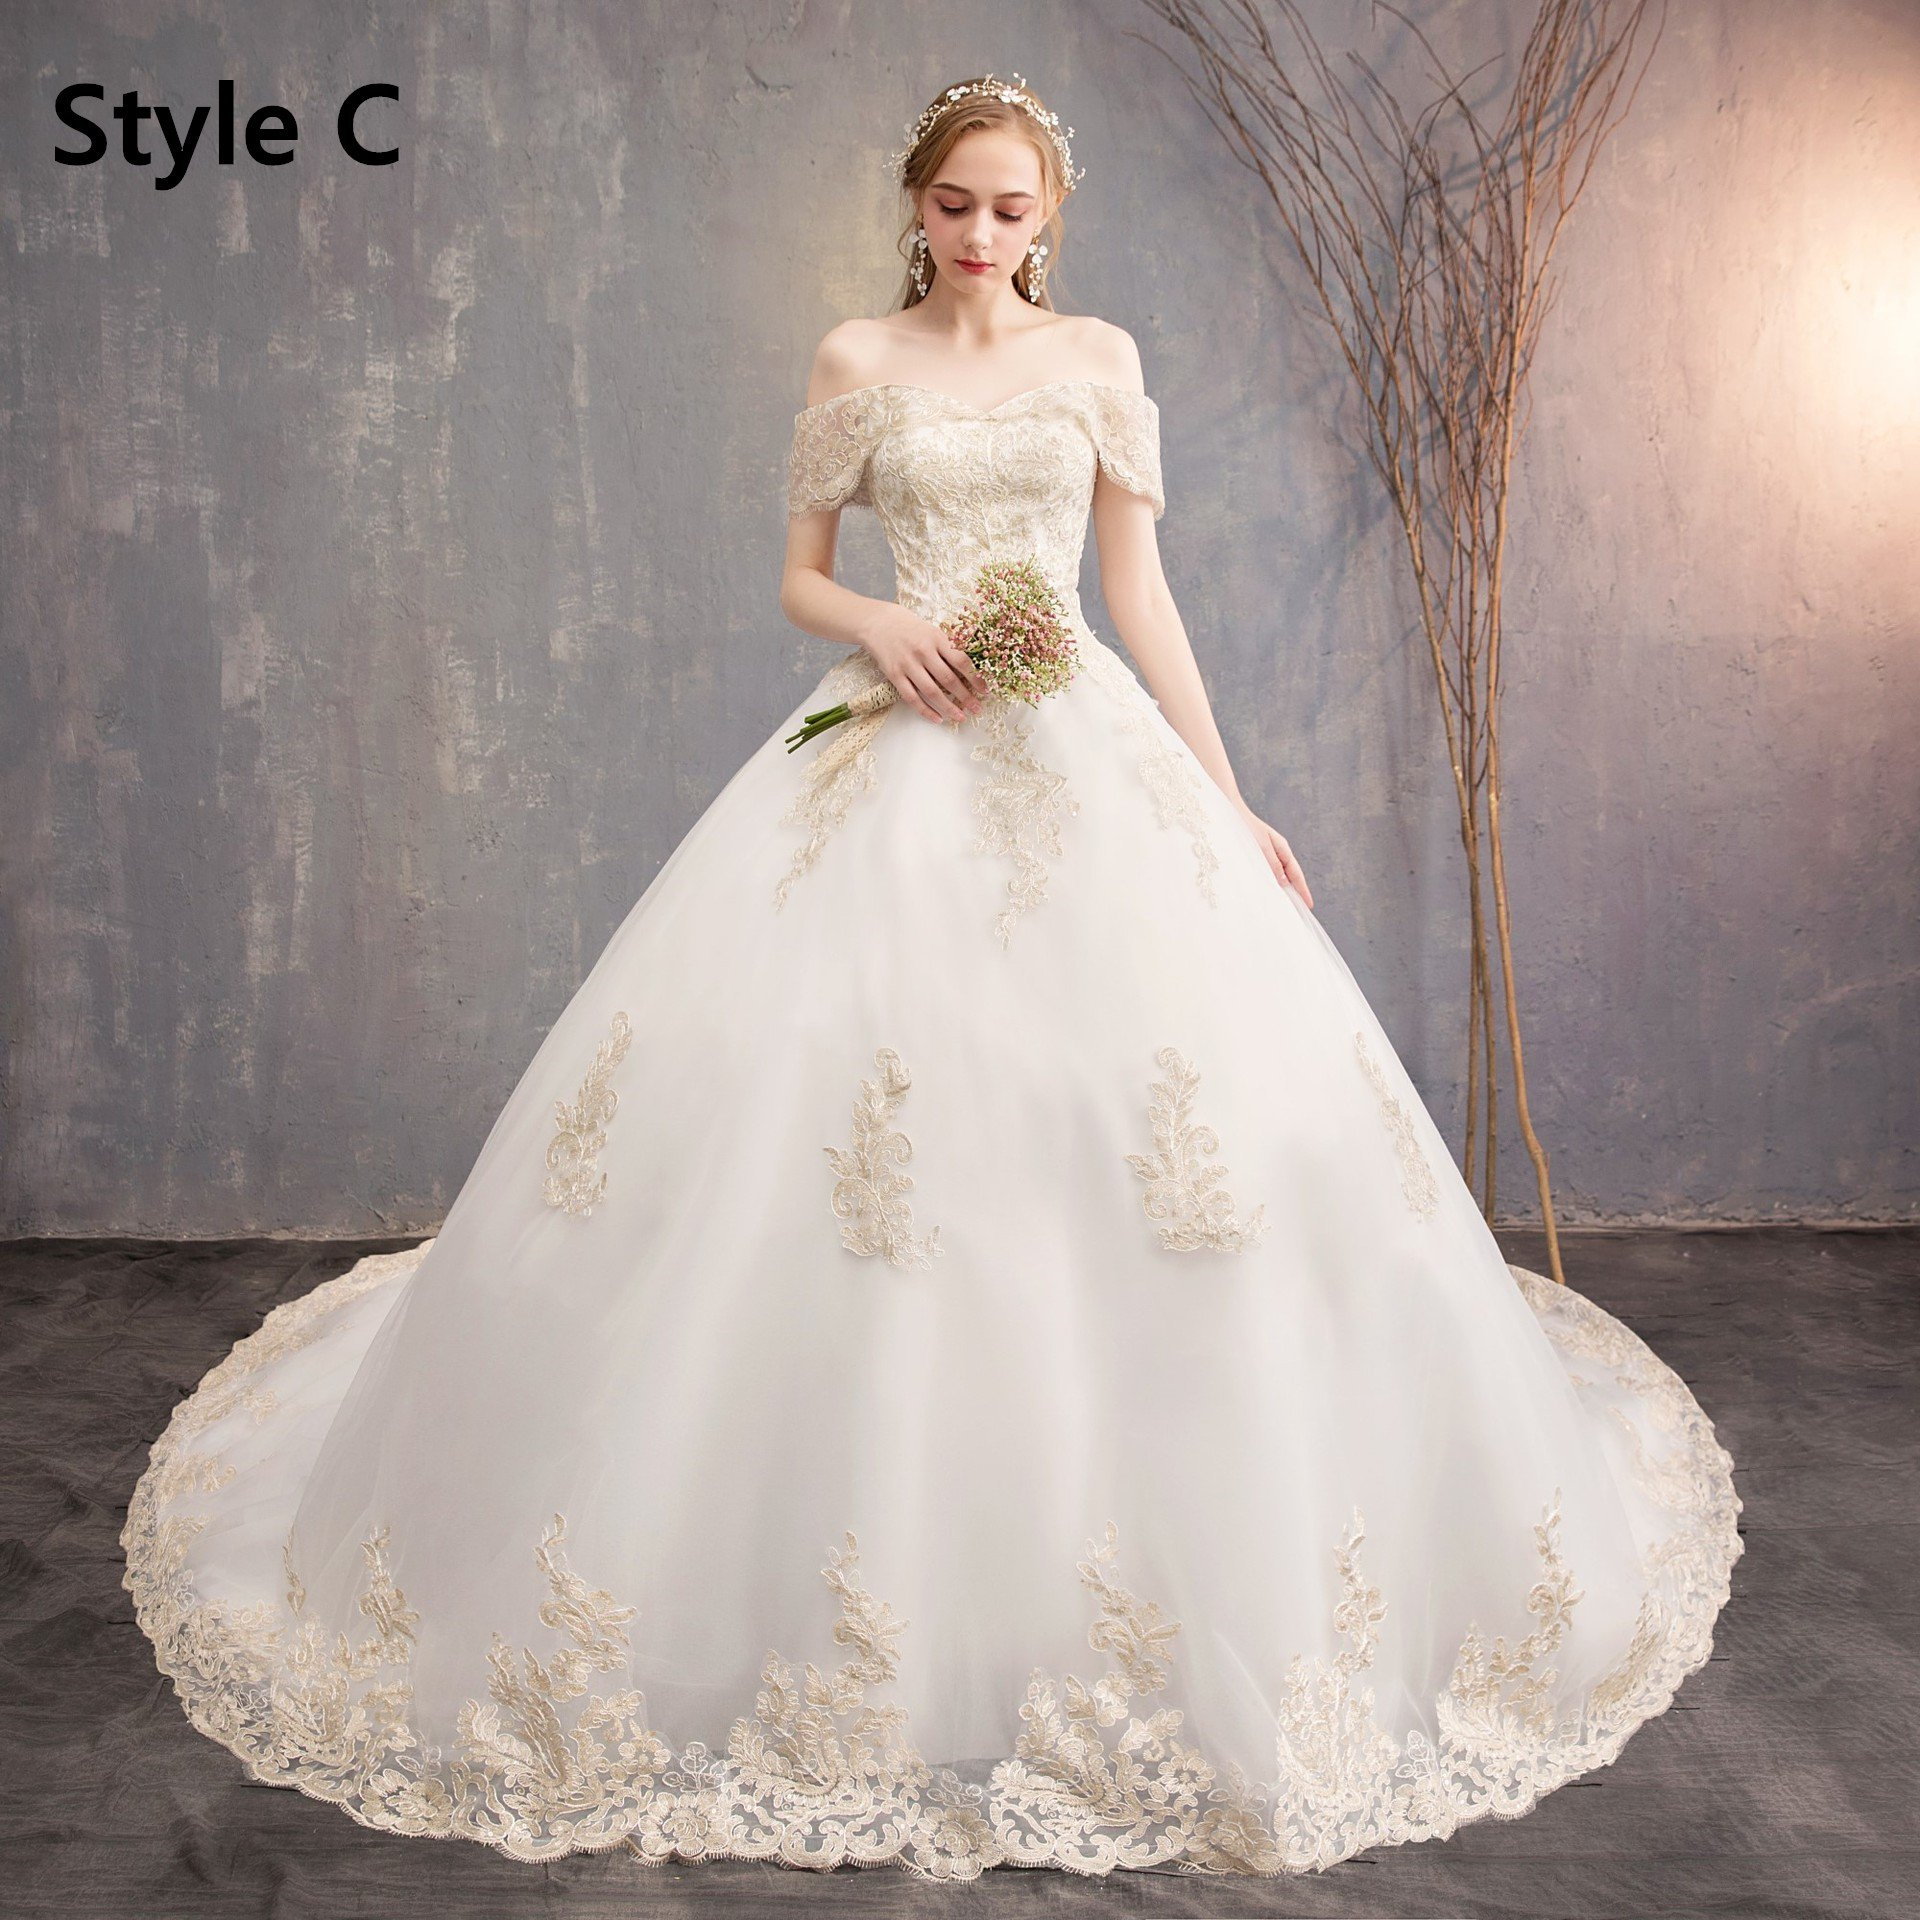 Lace Wedding Dresses 2020 New 715 Wedding Wear Gown Hot Dresses Blue And White Floral Maxi Dress Long Evening Gowns Red Wedding Lehenga Ivory Lace Flower Girl Dress